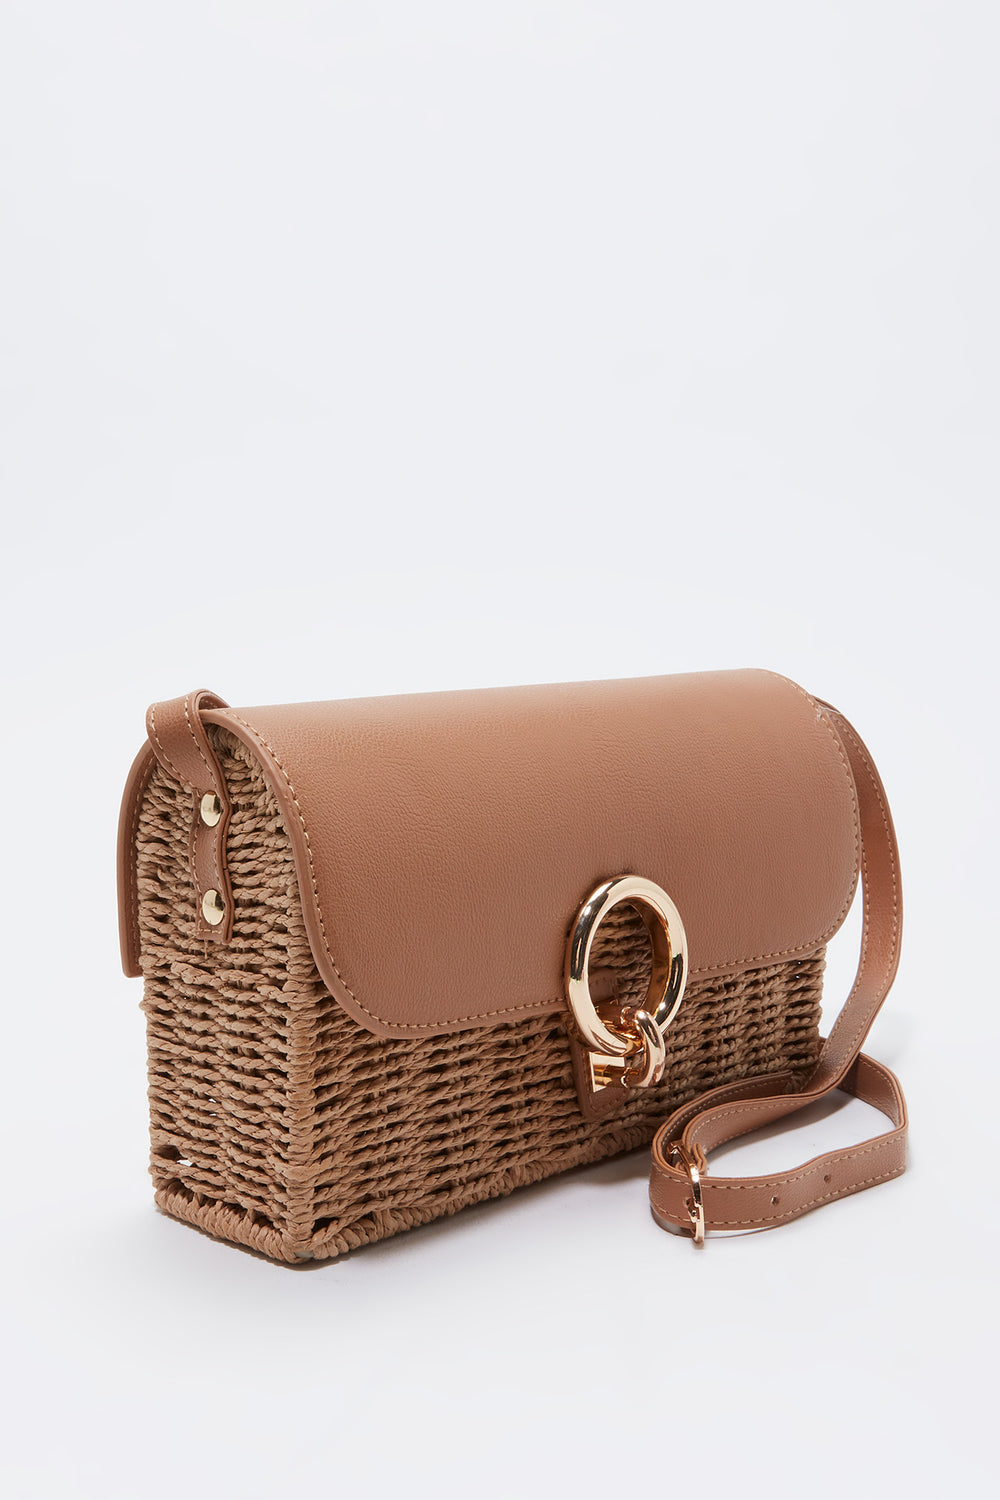 Contrast Faux Leather Crossbody Wicker Bag Natural